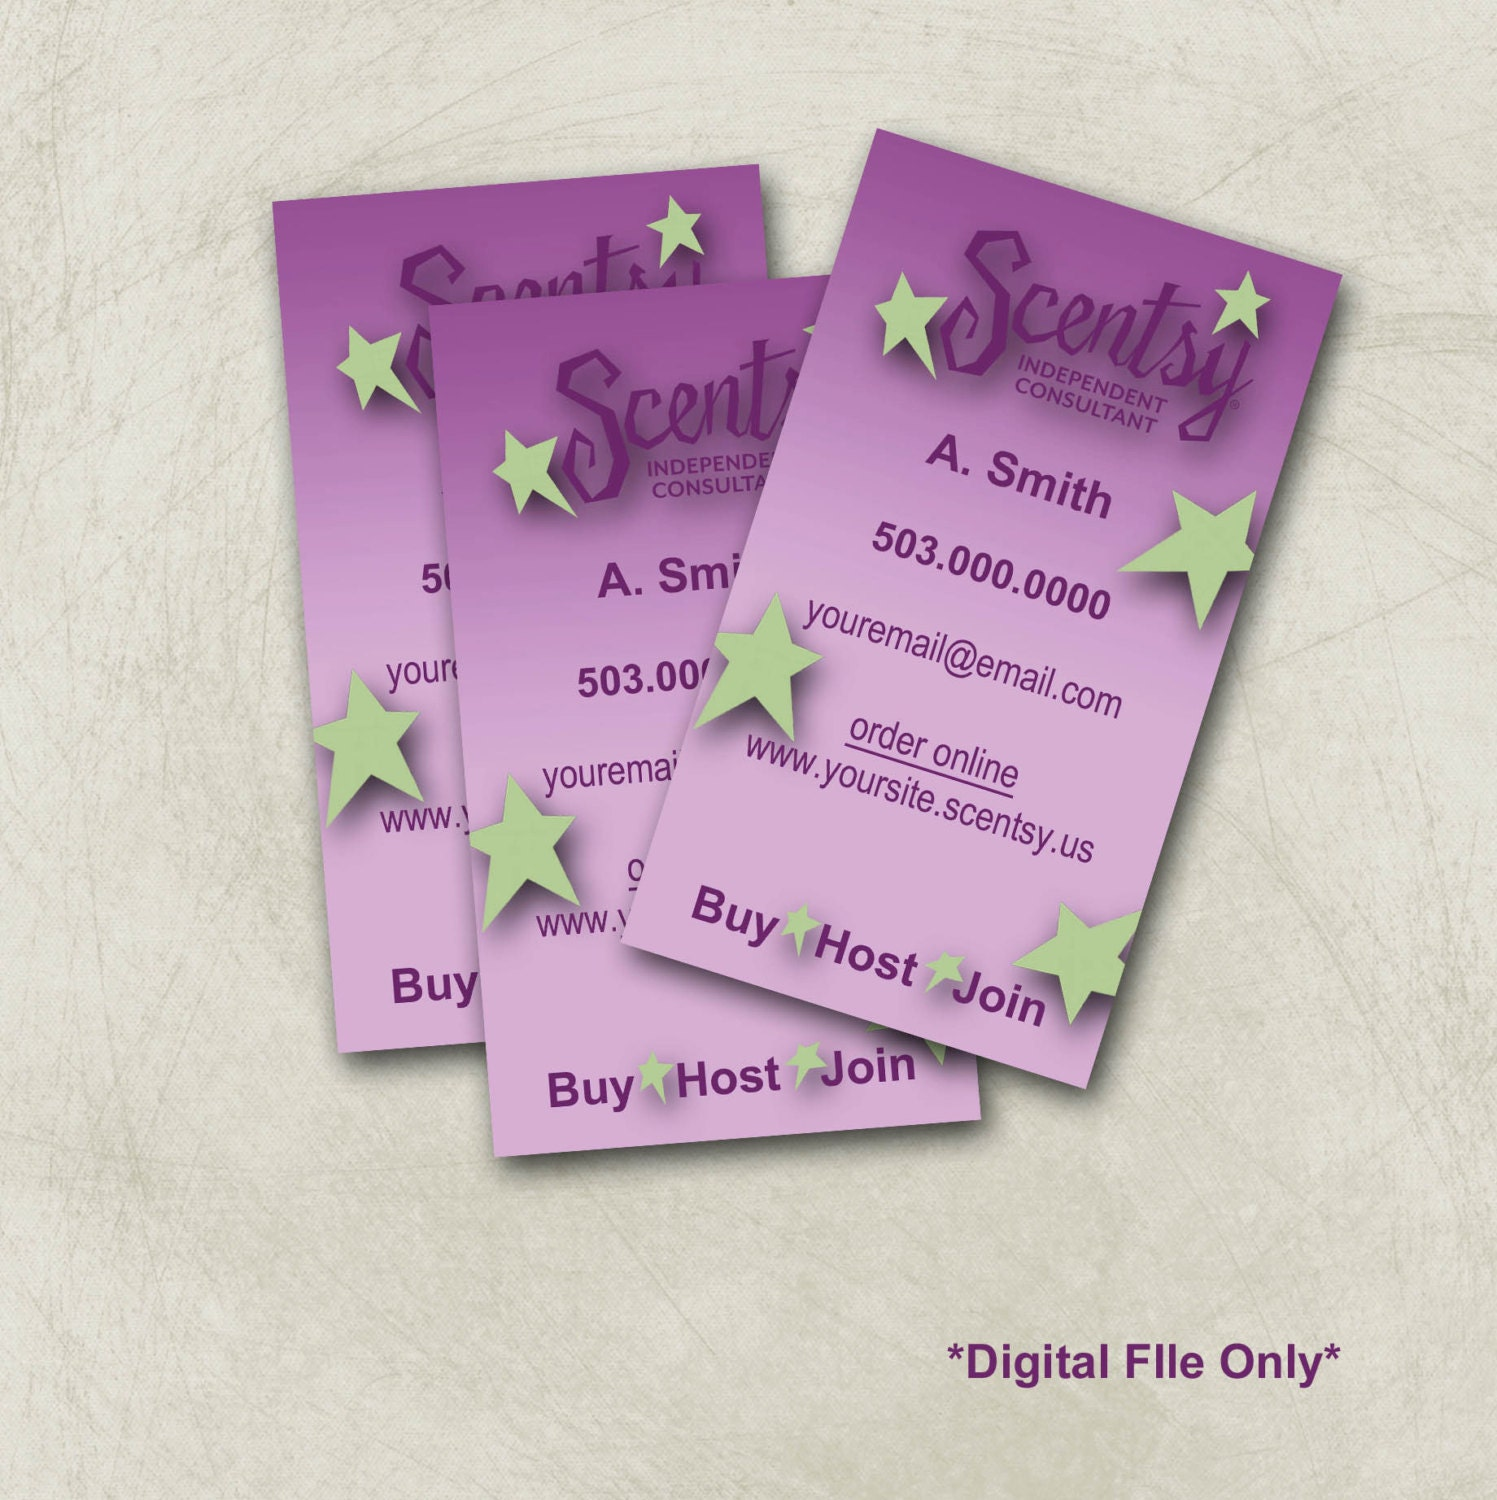 Items similar to Scentsy Business Card Design on Etsy